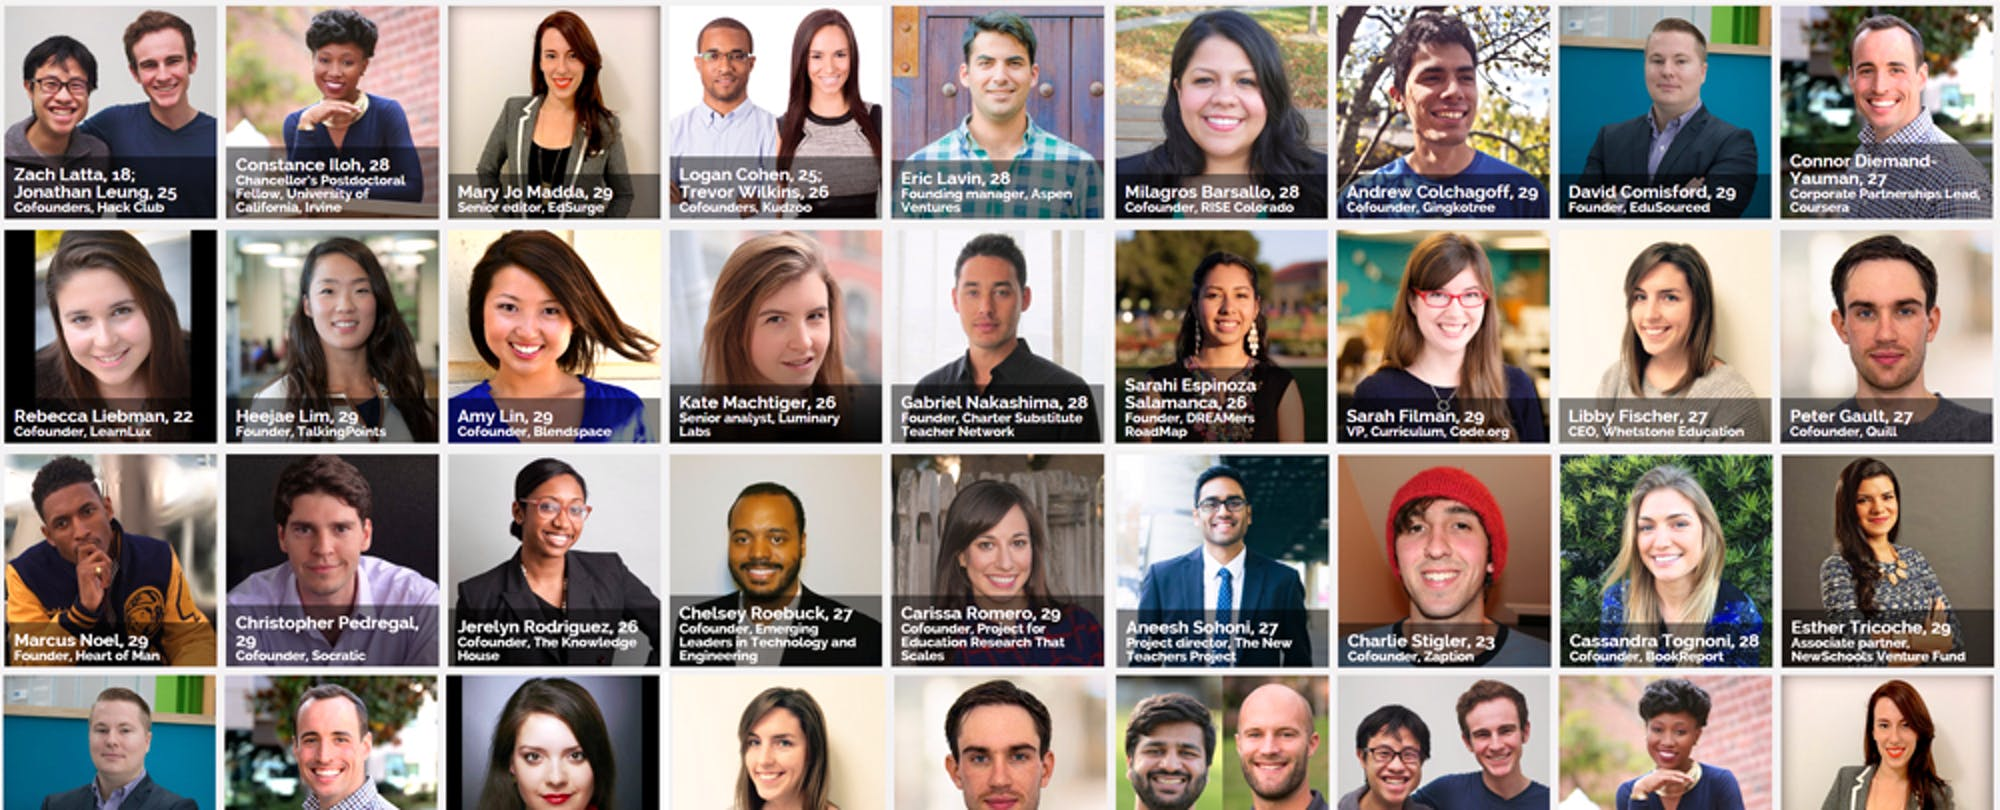 Forbes' '30 Under 30' Education Changemakers to Watch in 2016